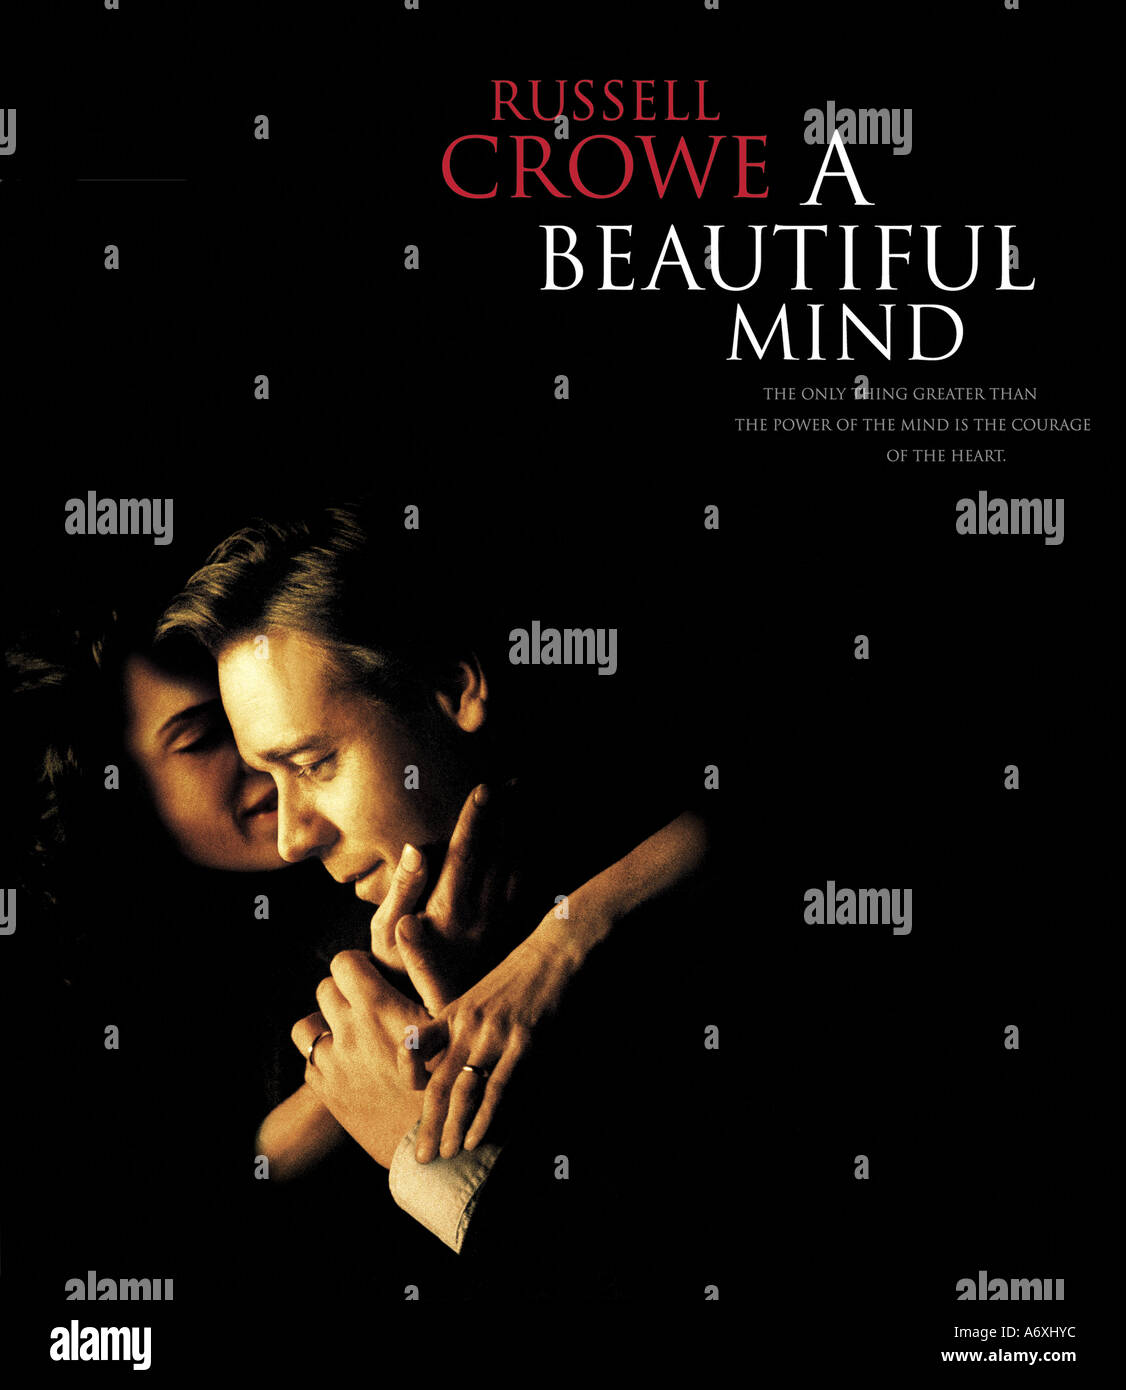 BEAUTIFUL MIND Poster for 2001 Universal film with Russell Crowe Stock Photo